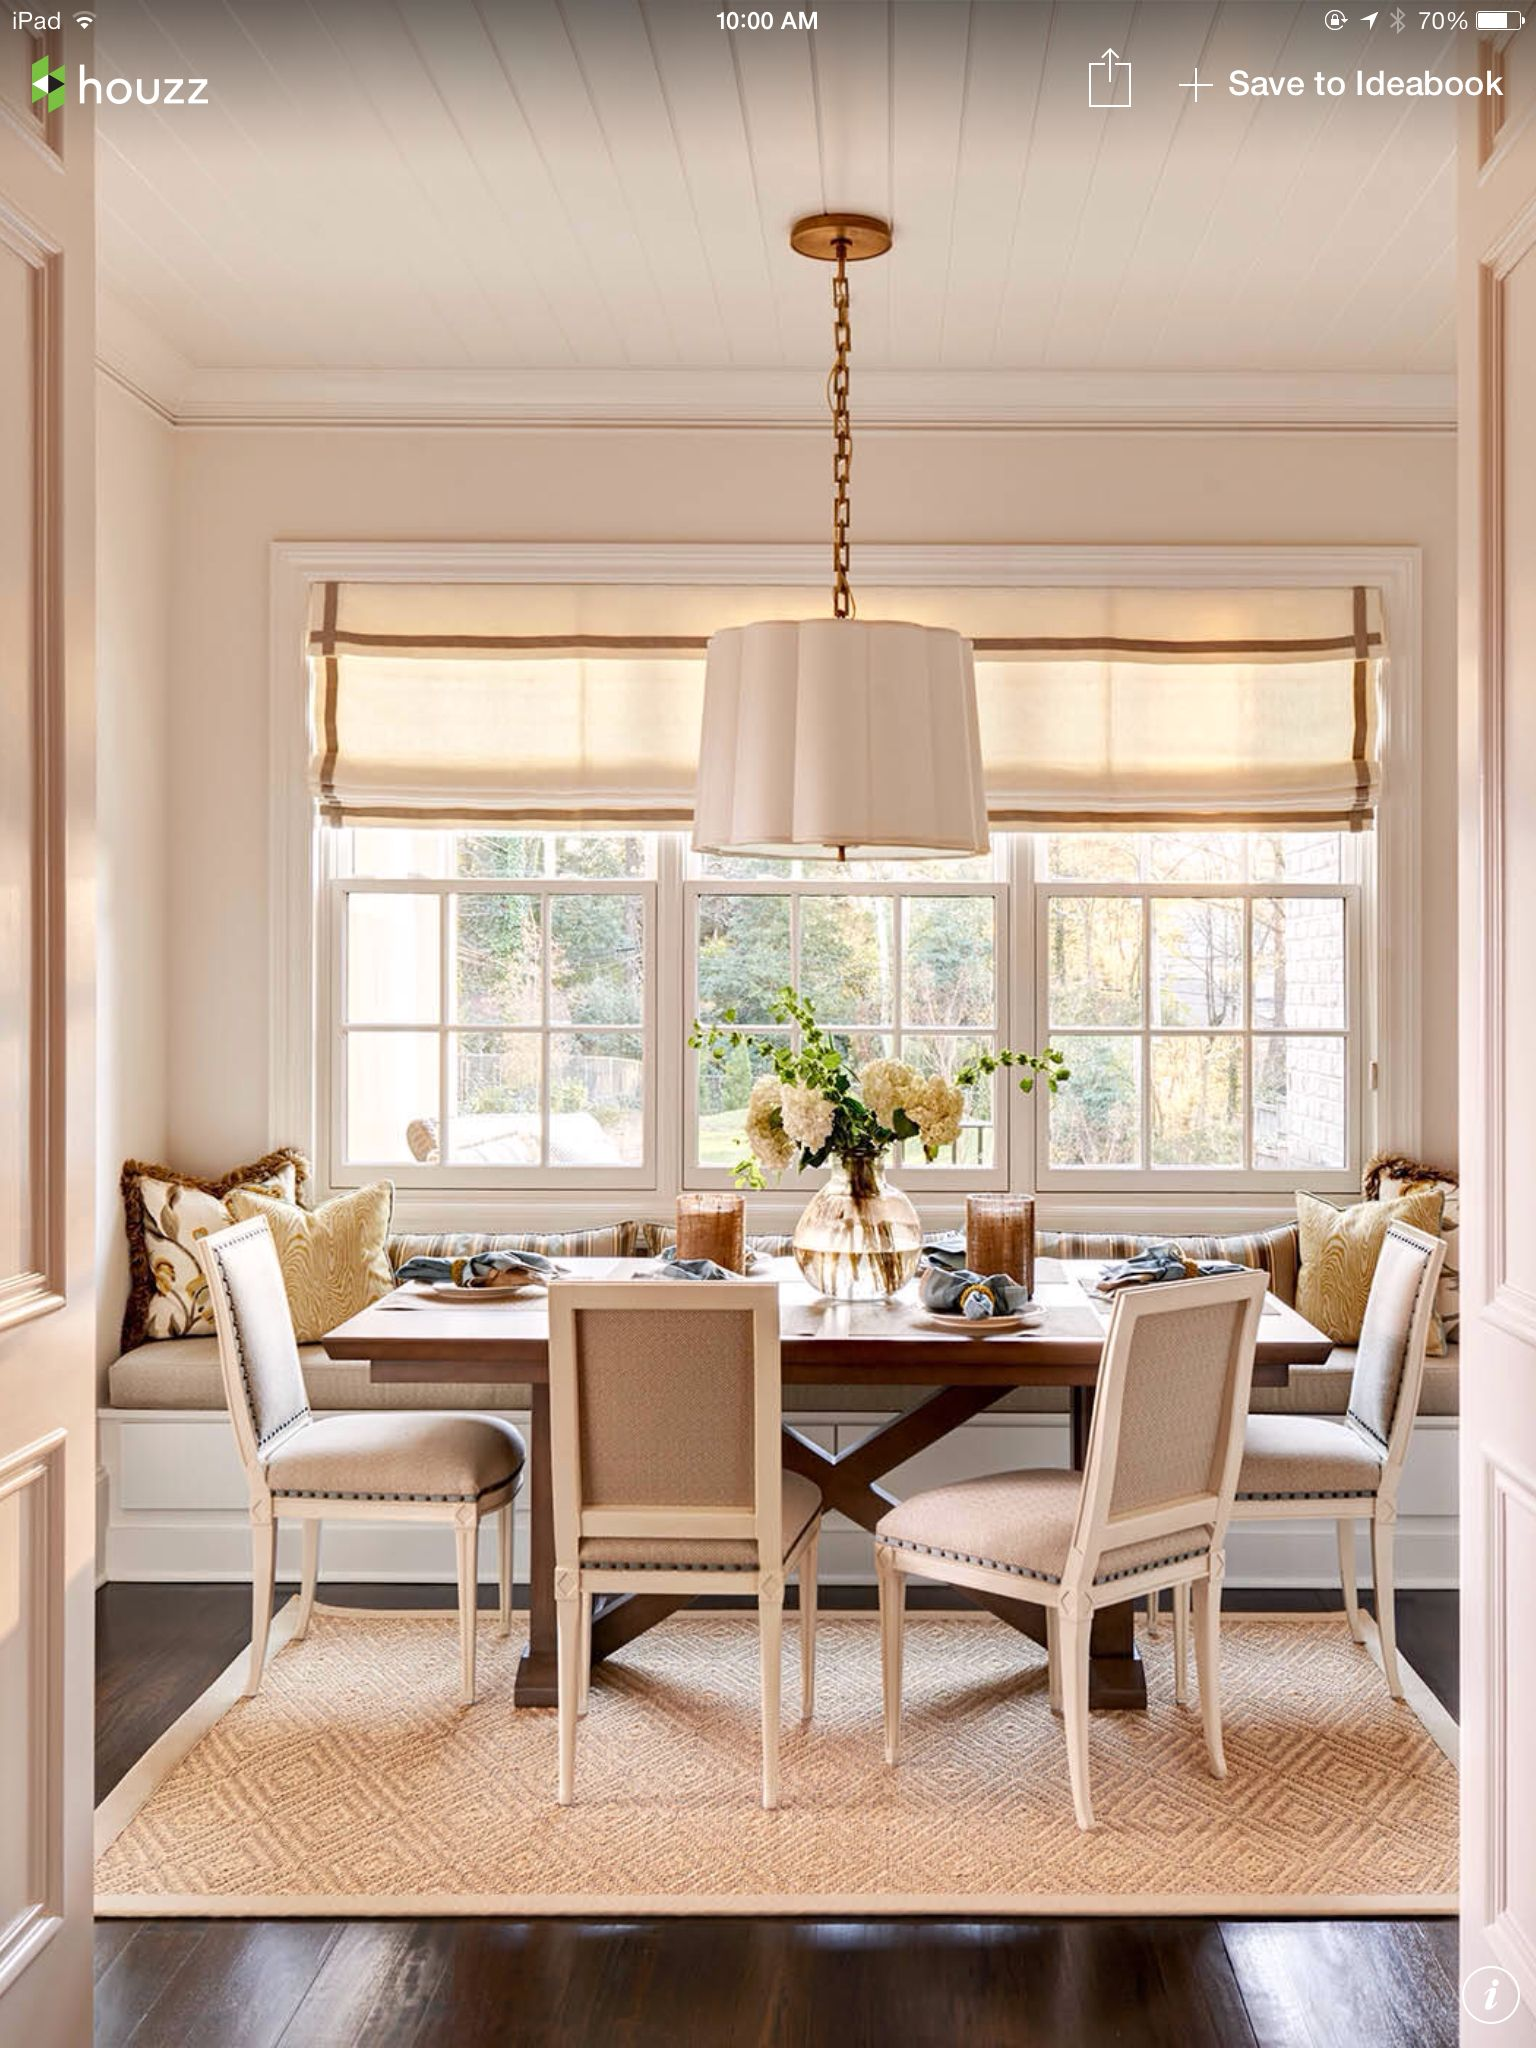 This Reminds Me Of Our Breakfast Room